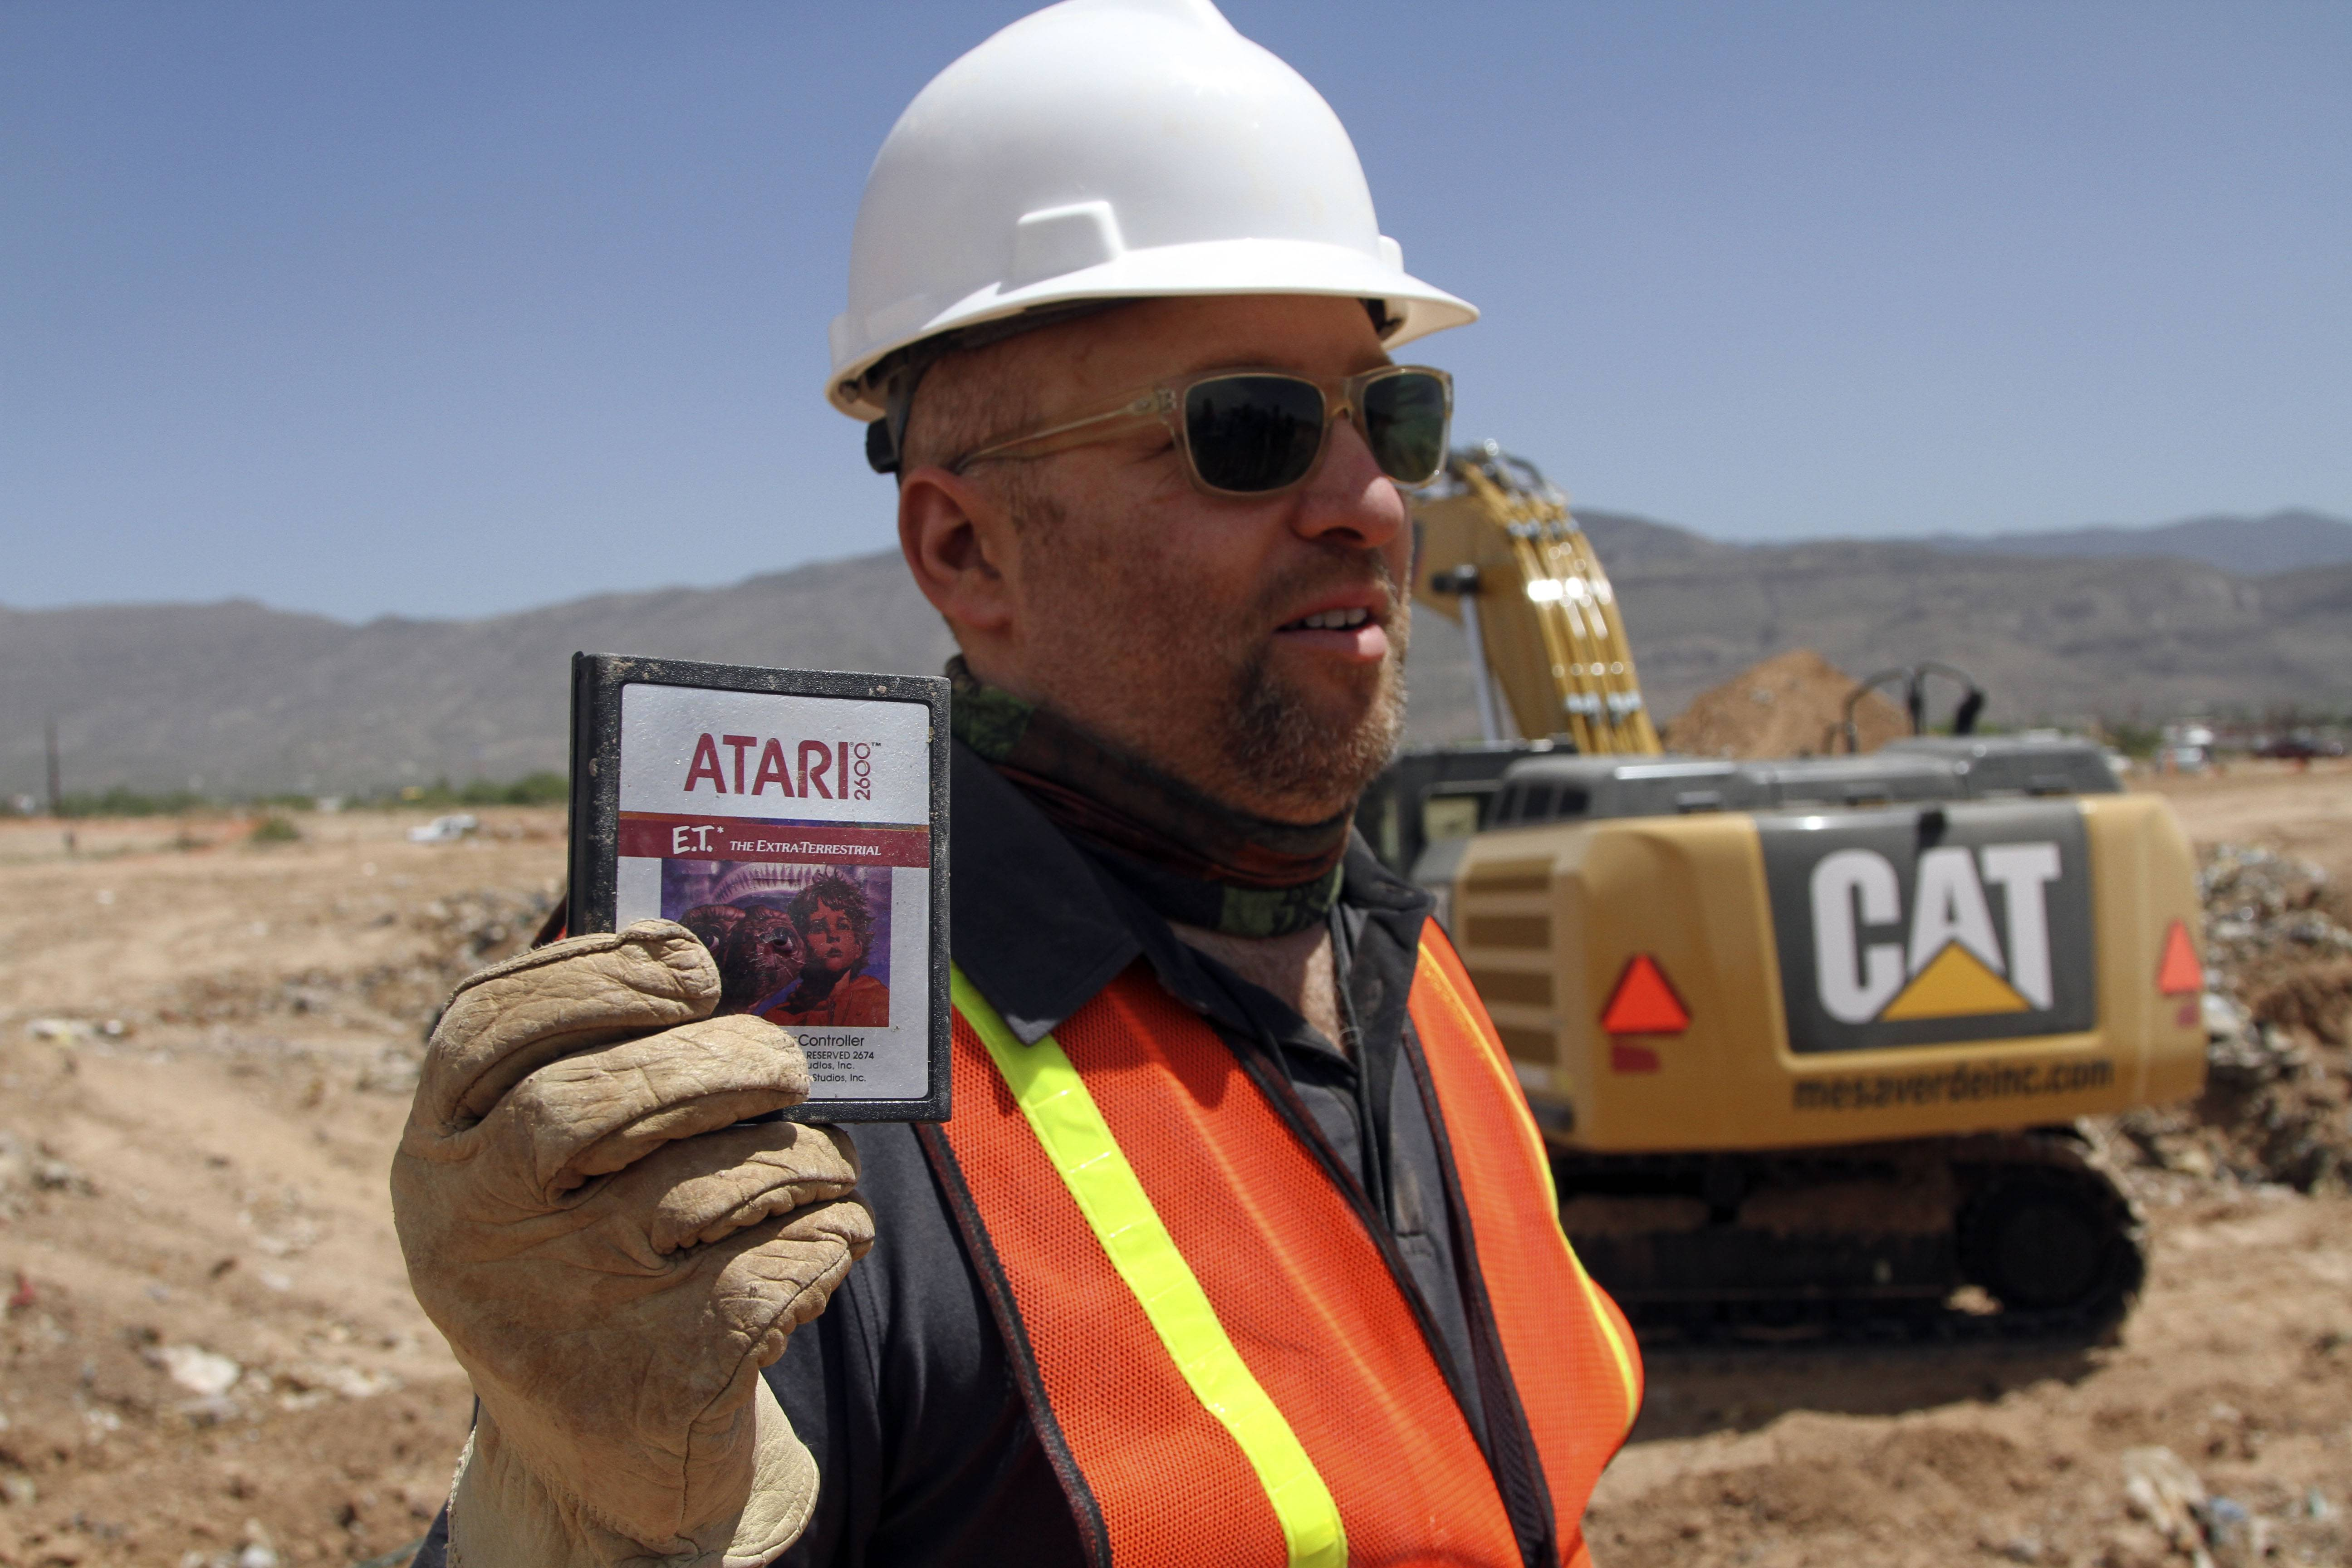 Film Director Zak Penn shows a box of a decades-old Atari 'E.T. the Extra-Terrestrial' game found in a dumpsite in Alamogordo, N.M., Saturday. Producers of a documentary dug in a southeastern New Mexico landfill in search of millions of cartridges of the game that has been called the worst game in the history of video gaming and were buried there in 1983.